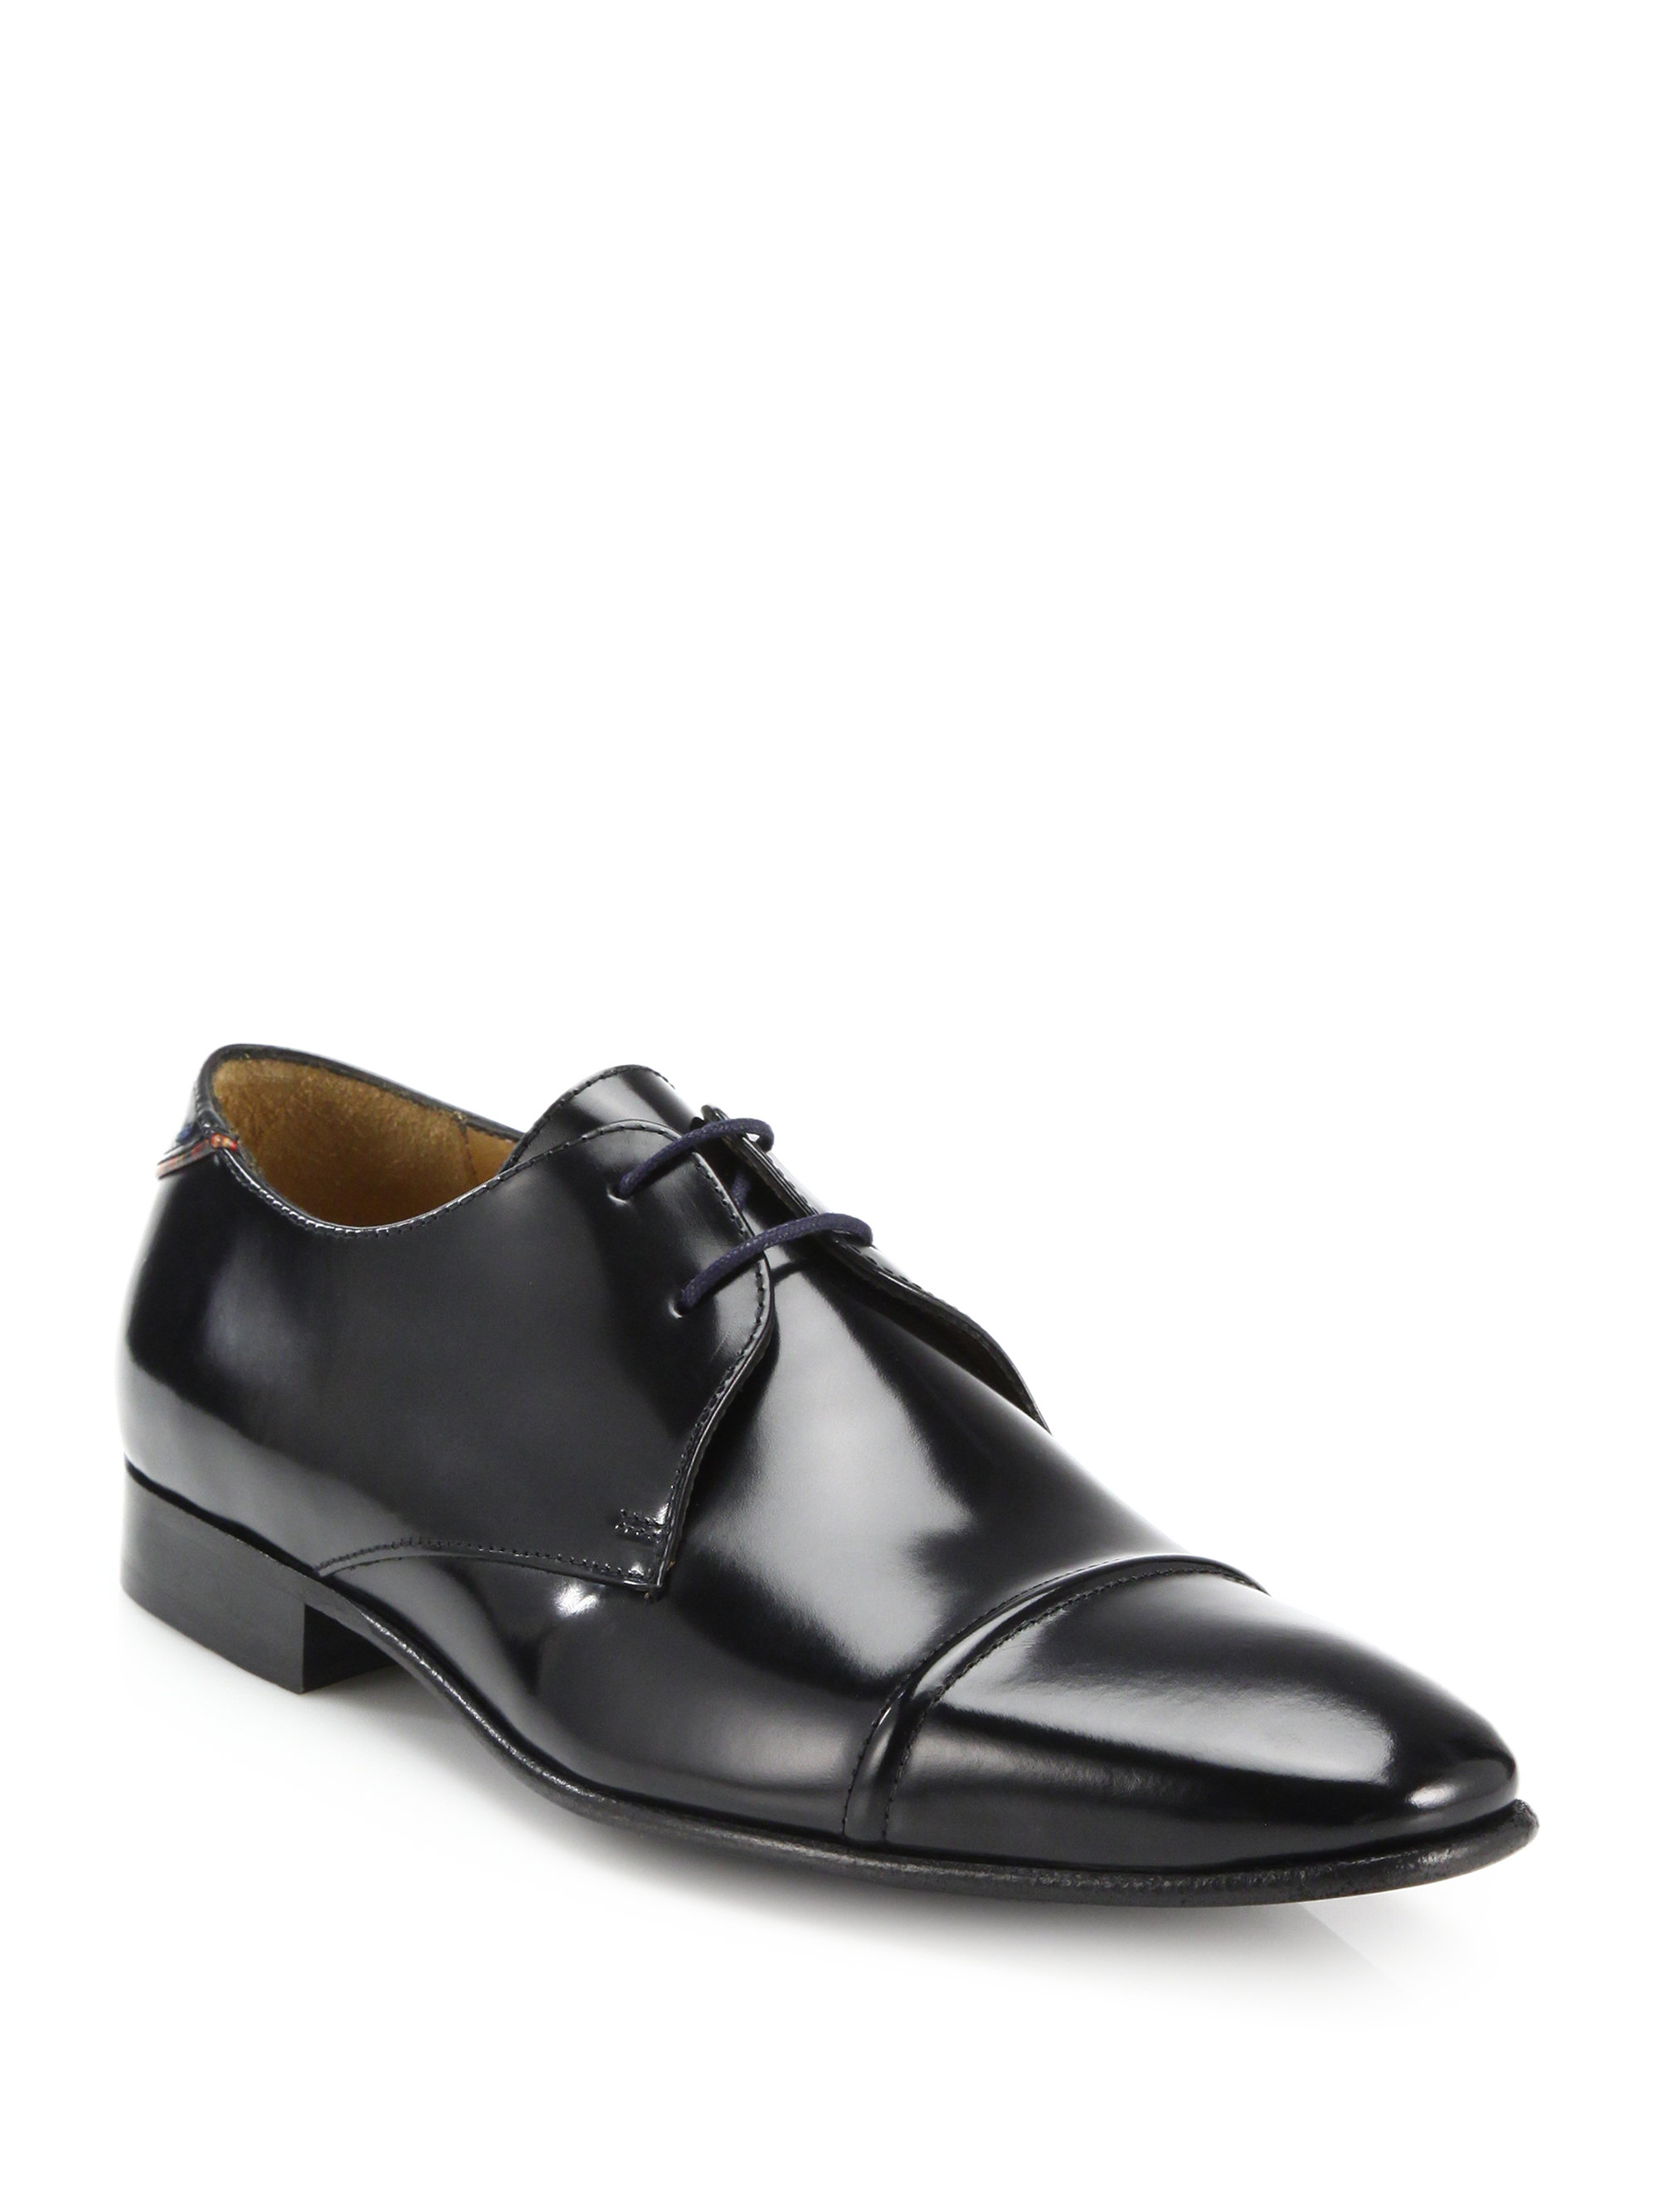 Paul Smith Chester Leather Derby Shoes sale for nice 9Fgbx